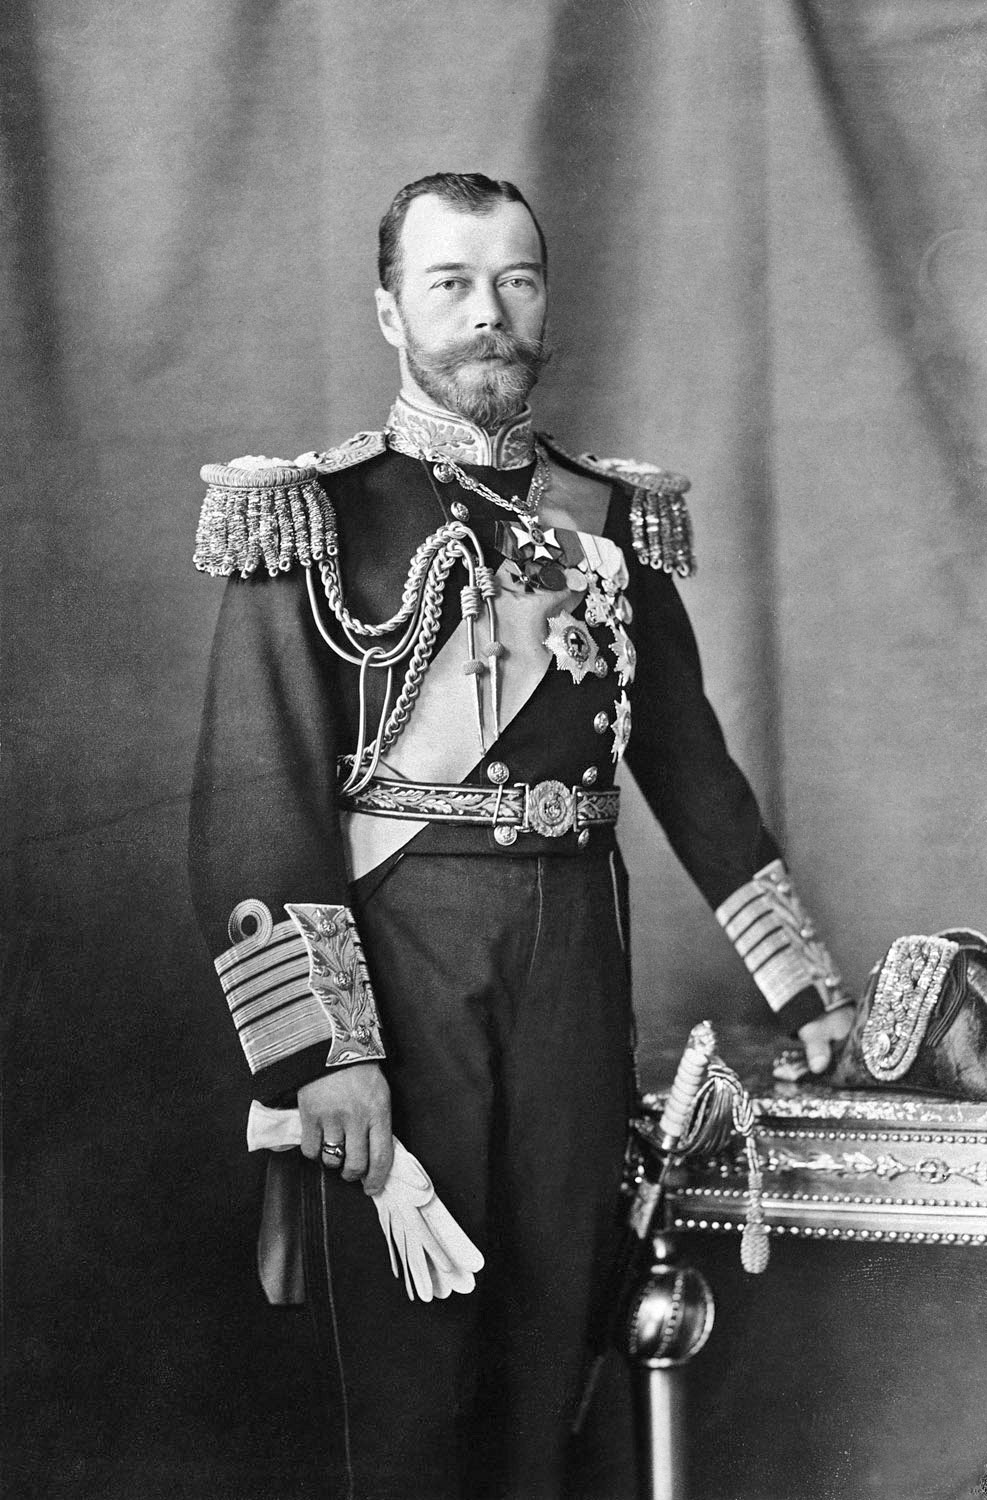 Boissonnas & Eggler: His Imperial Majesty Nicholas II of Russia